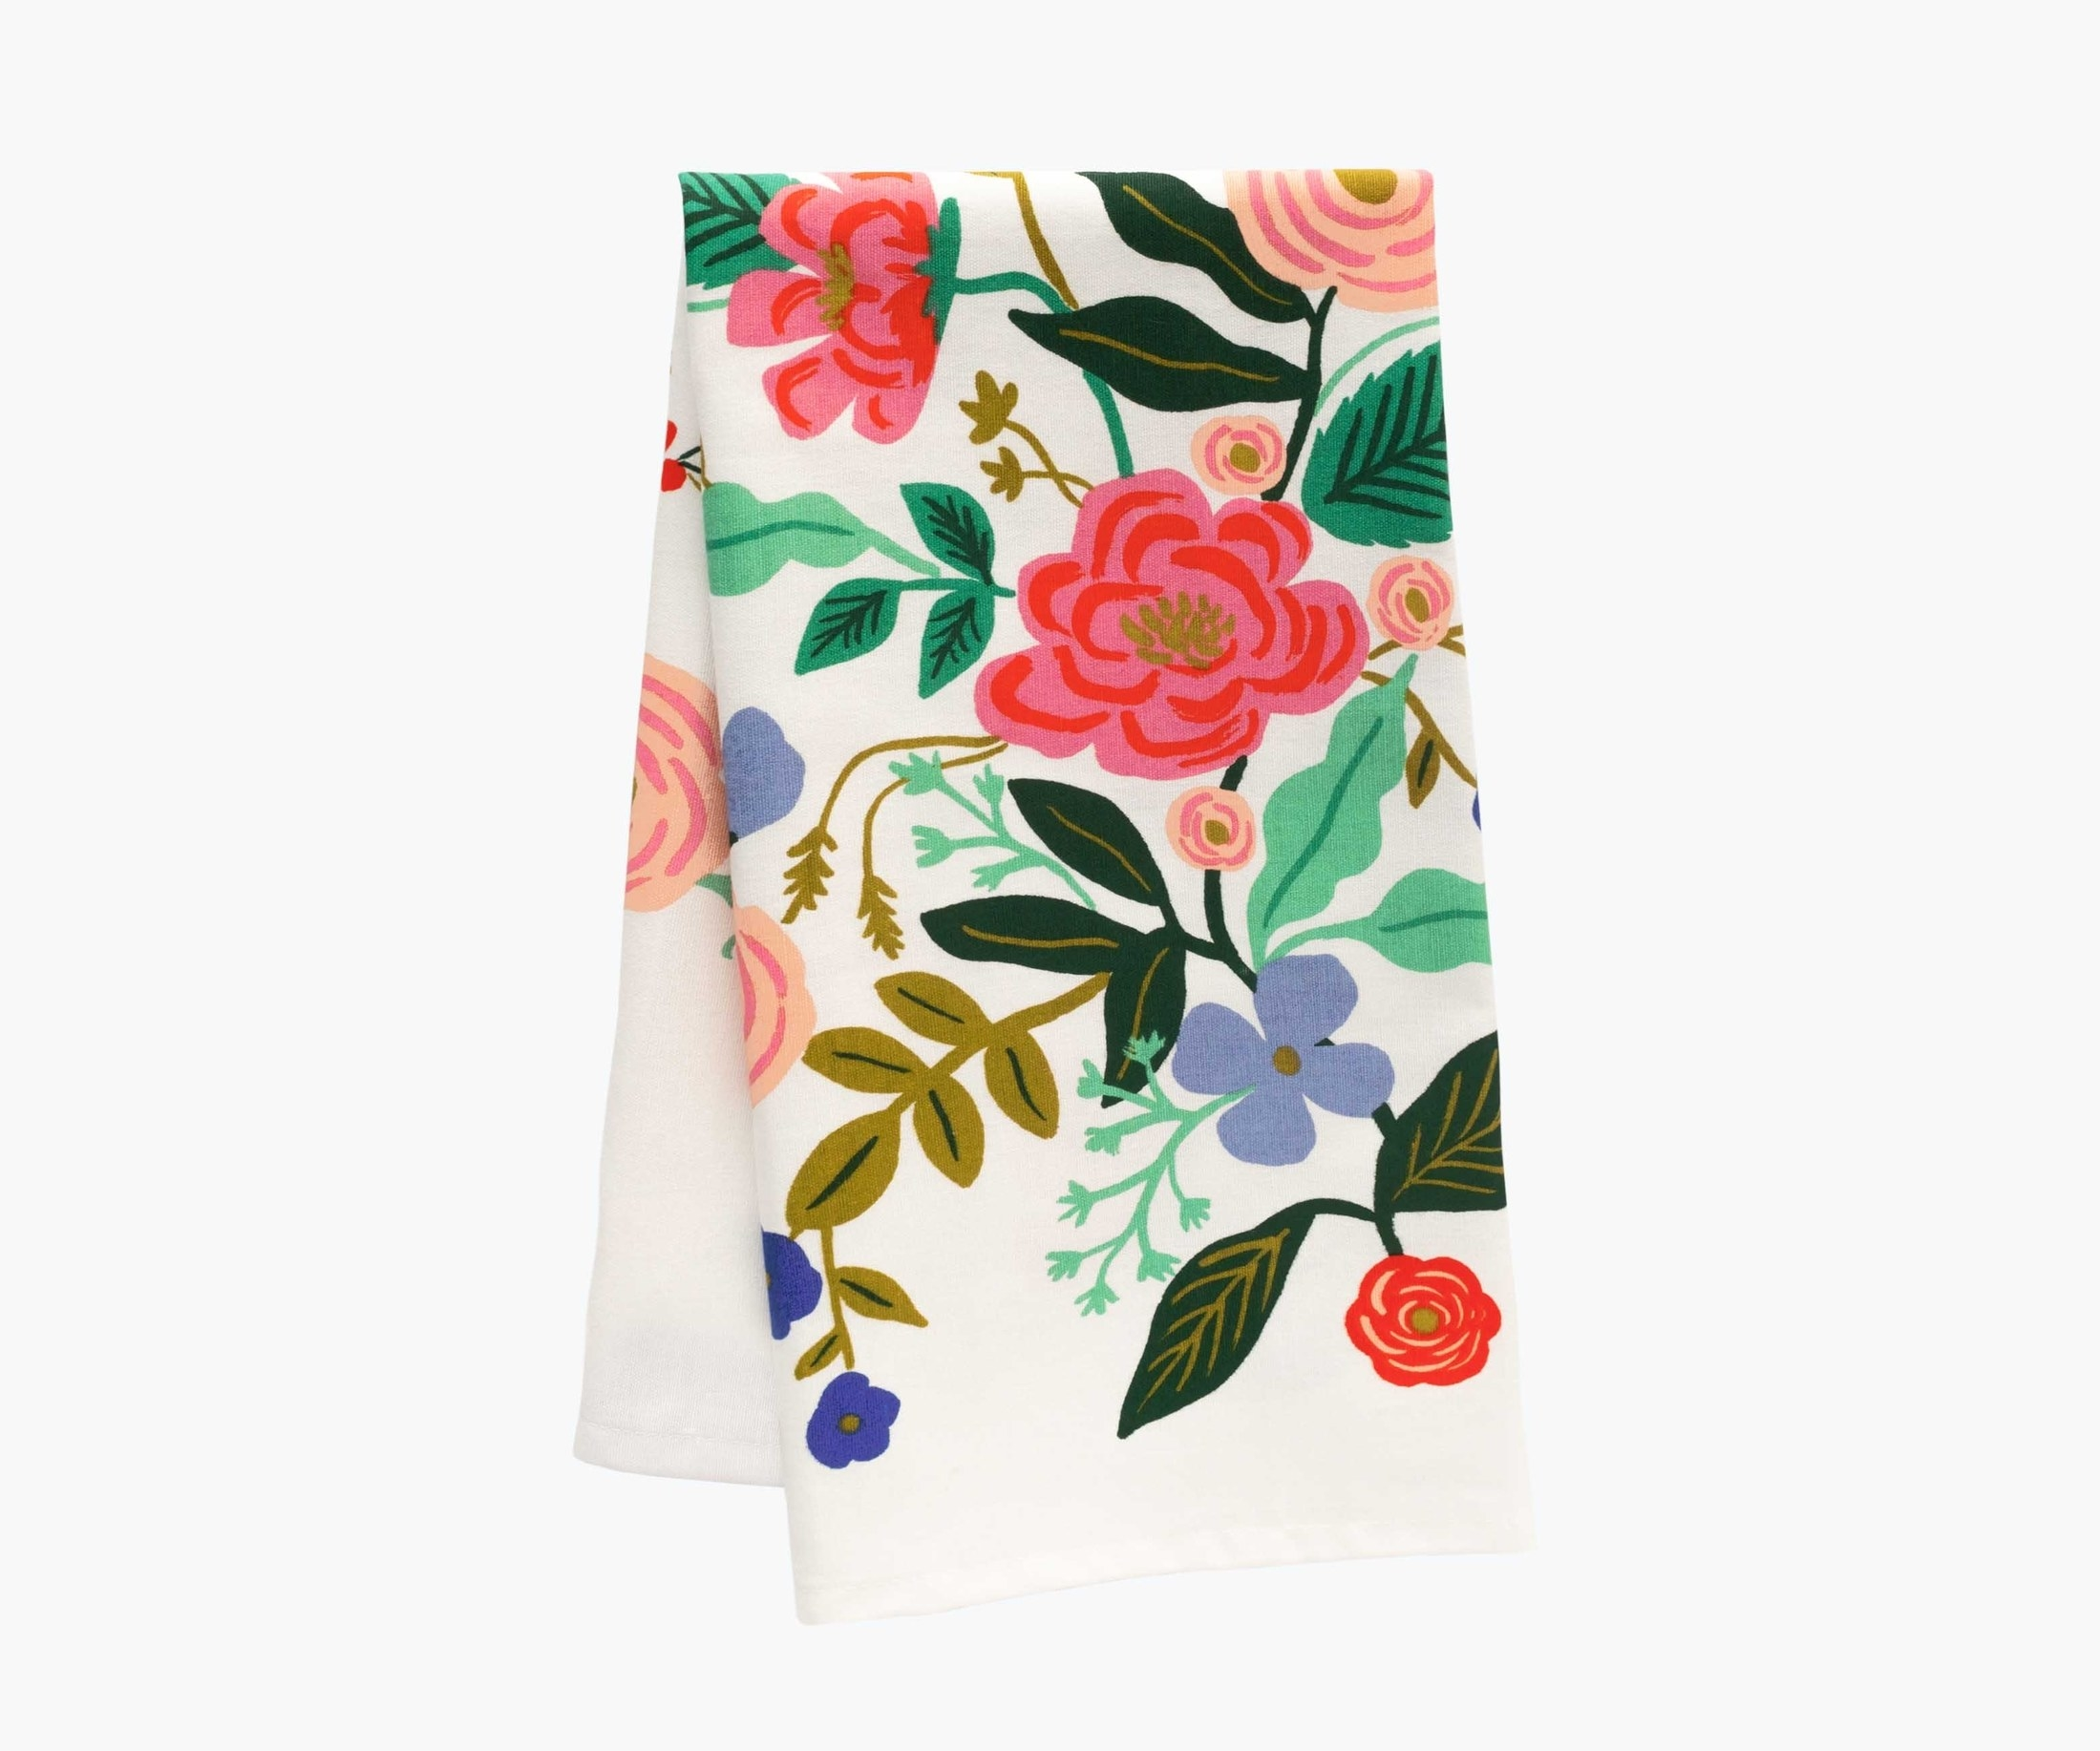 a white tea towel with colorful florals on it